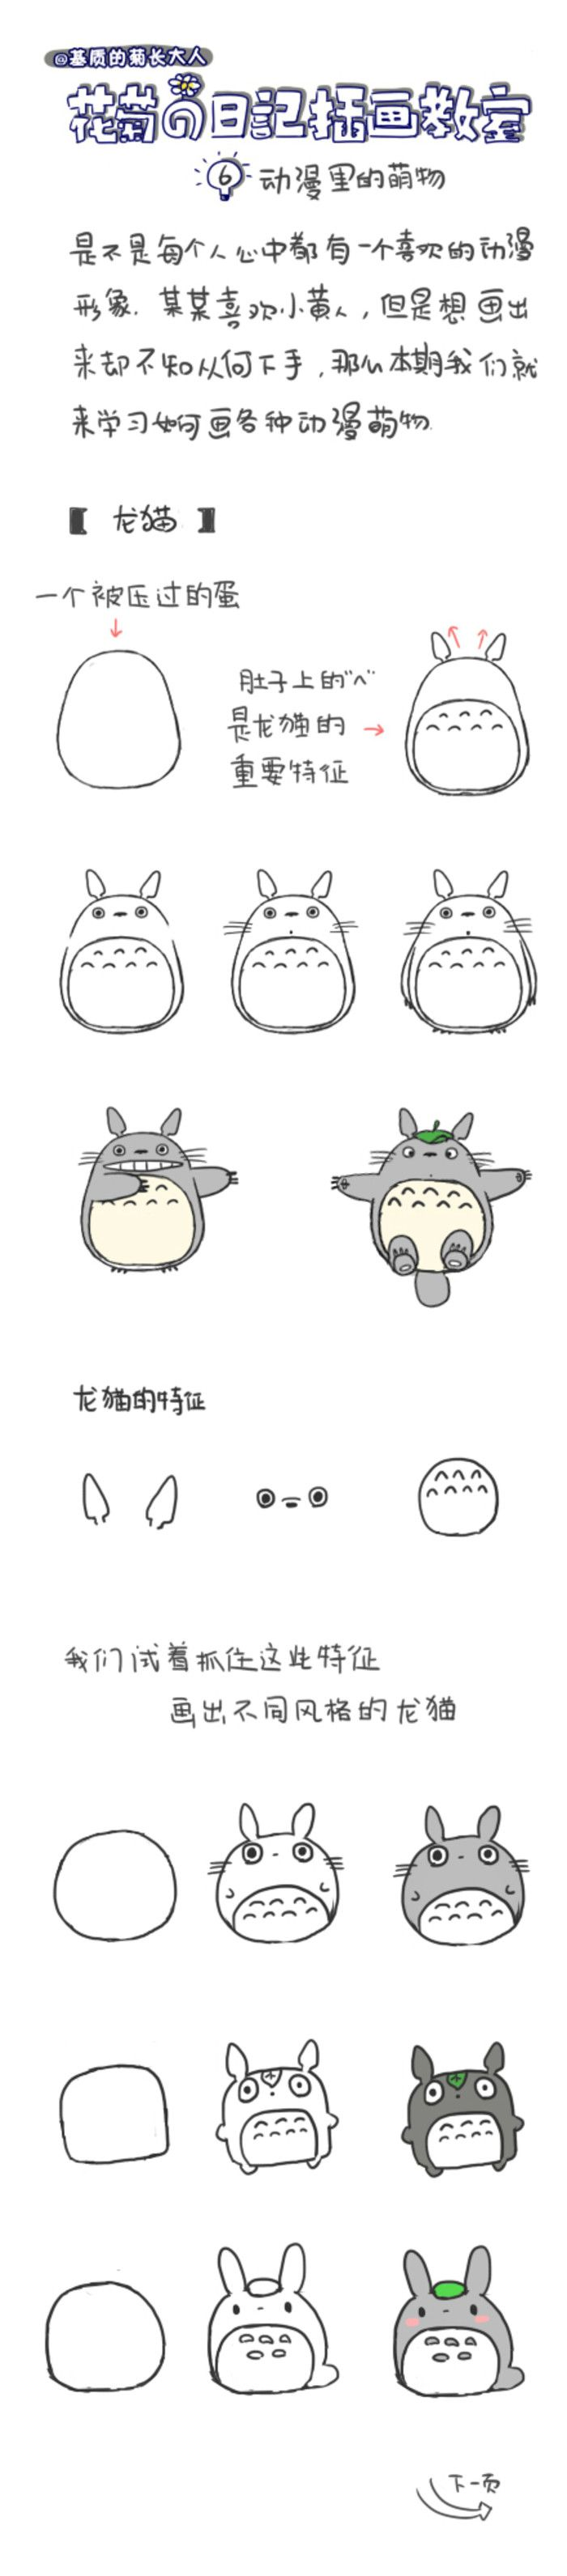 How to draw chinchillas.  Ju @ matrix grew from people